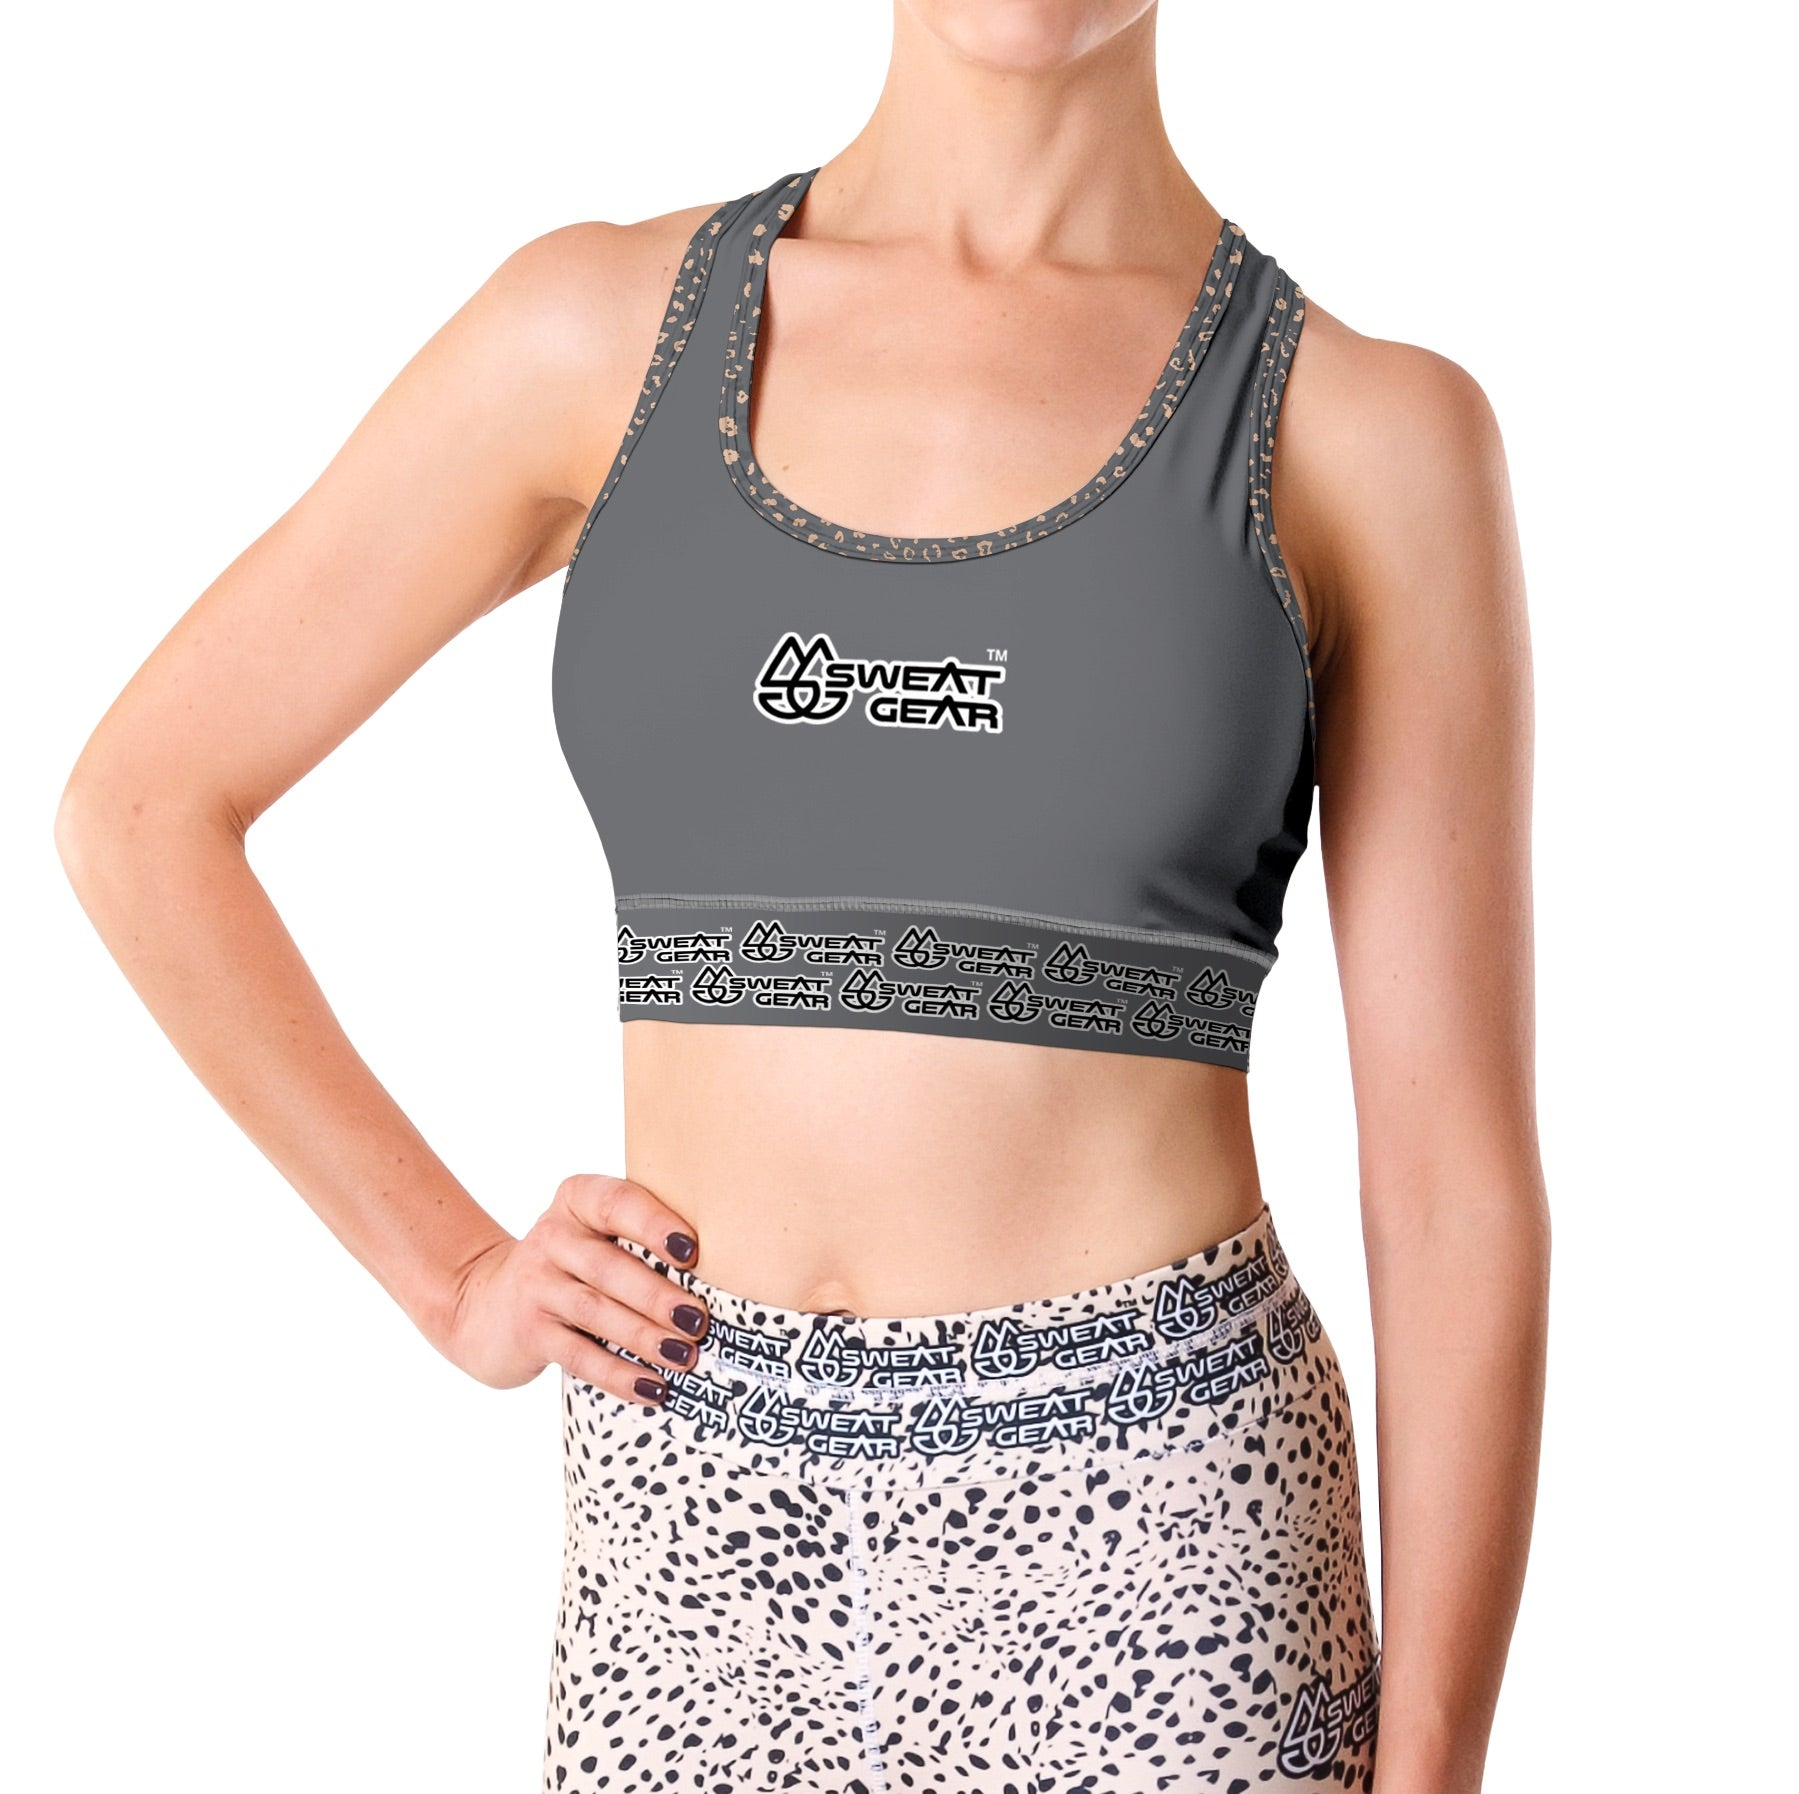 Earl Grey Crop Top (Sweatgear)